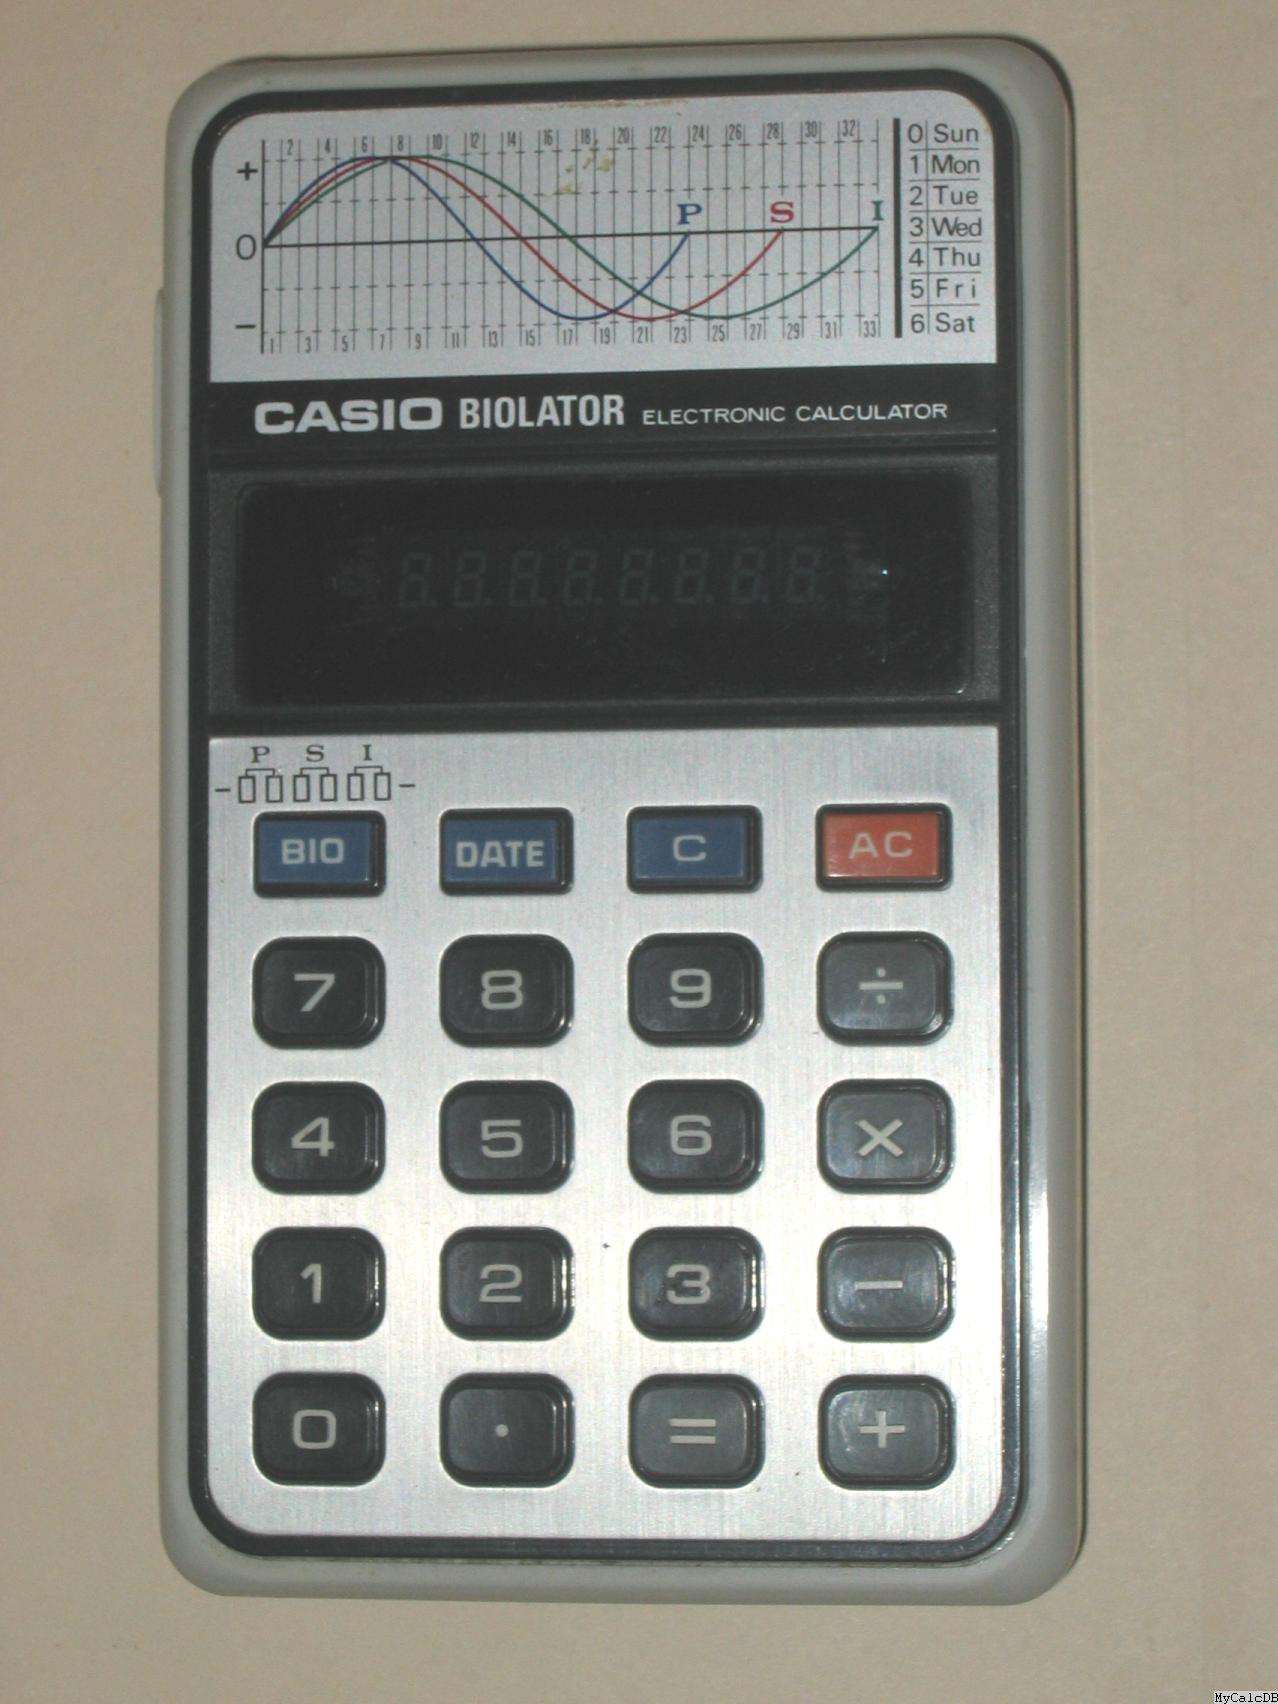 Casio BIOLATOR